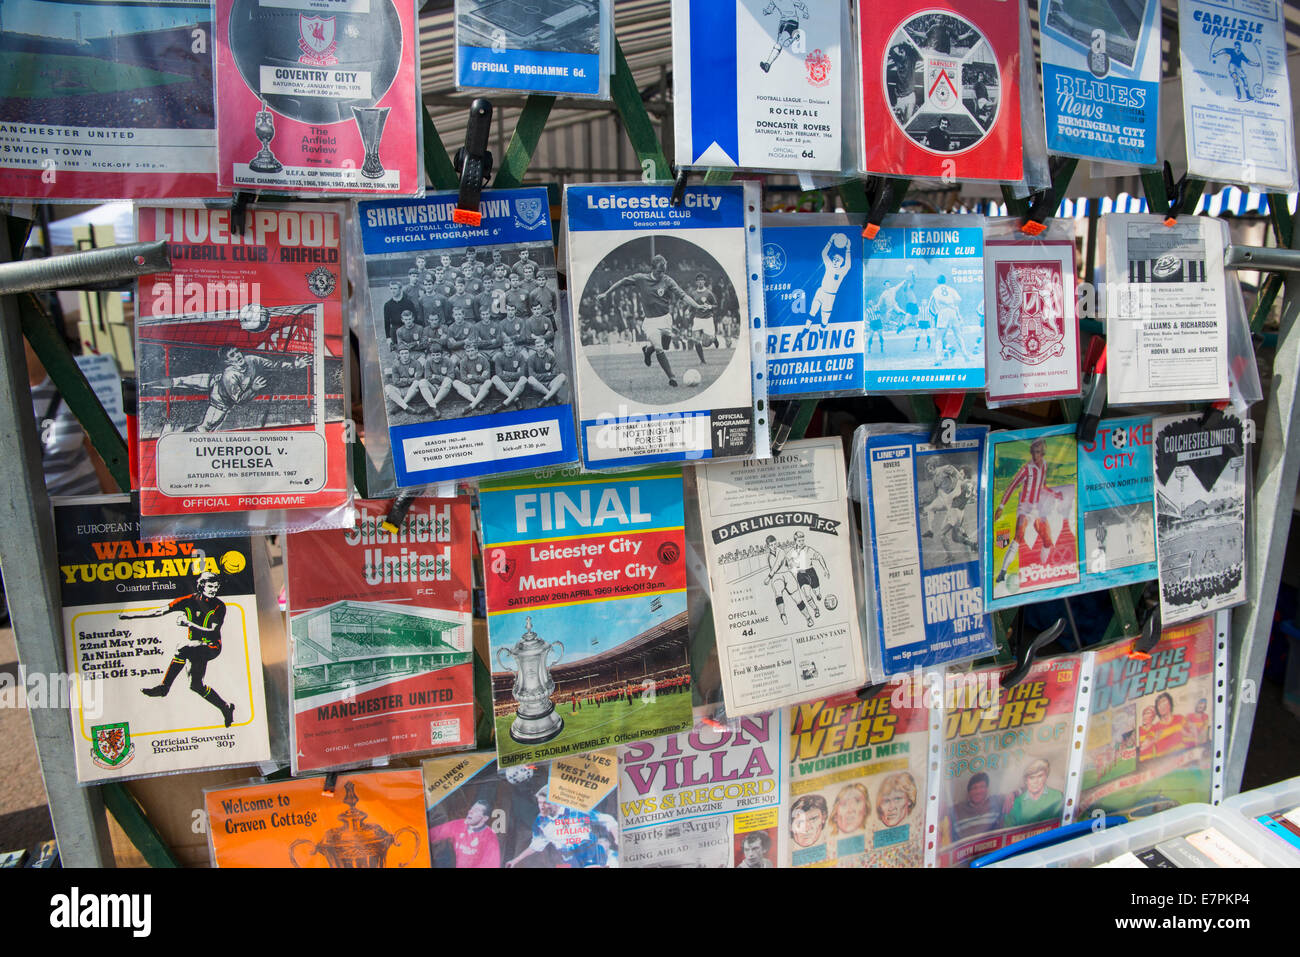 Old football programmes on sale at a Ludlow street market, Shropshire, England - Stock Image